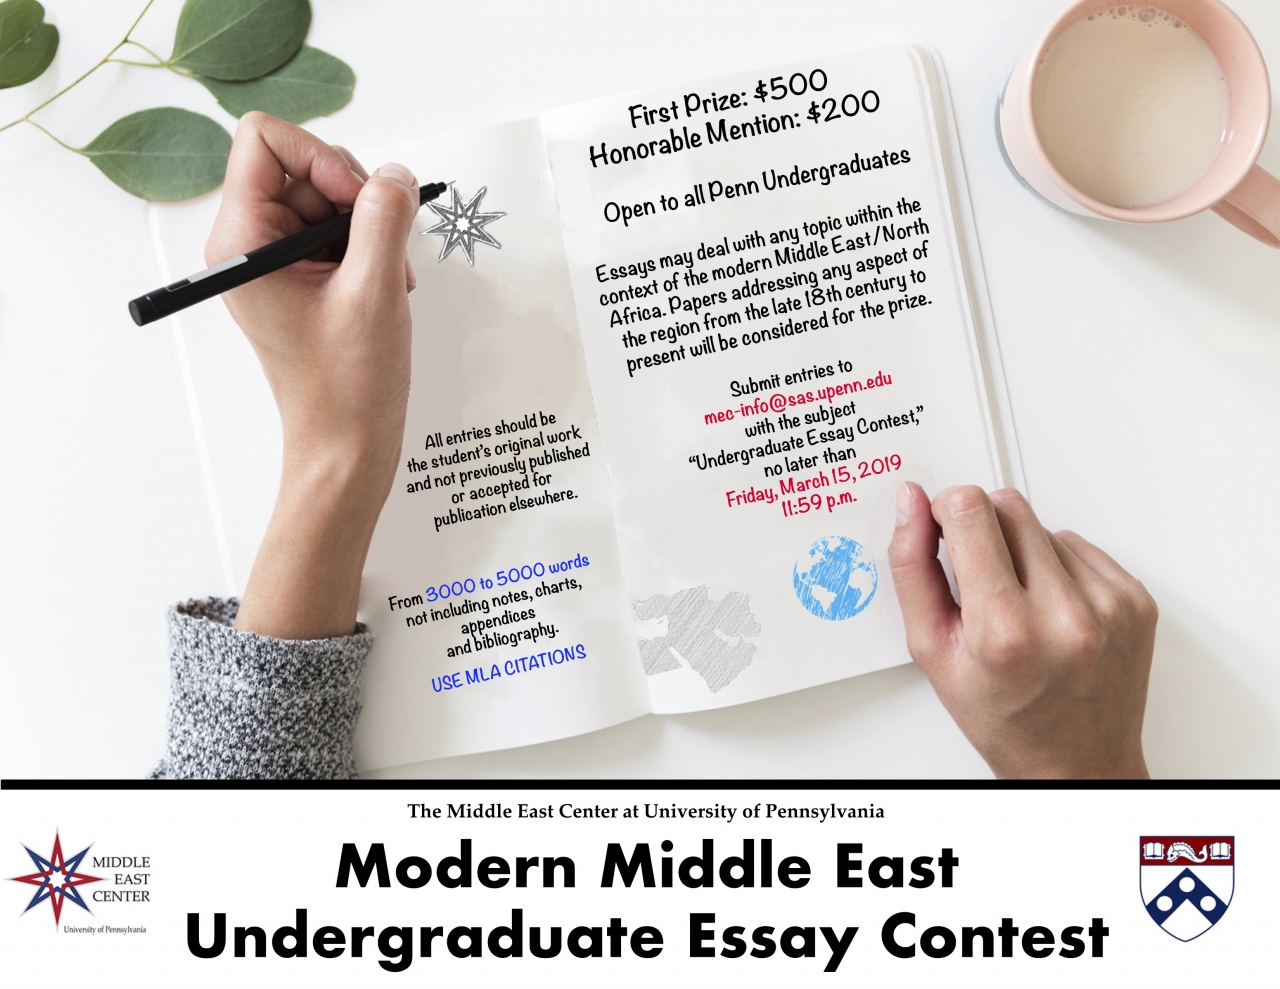 009 Essay Example Undergradessaycontest Remarkable Upenn Prompt 2018 College Confidential Full